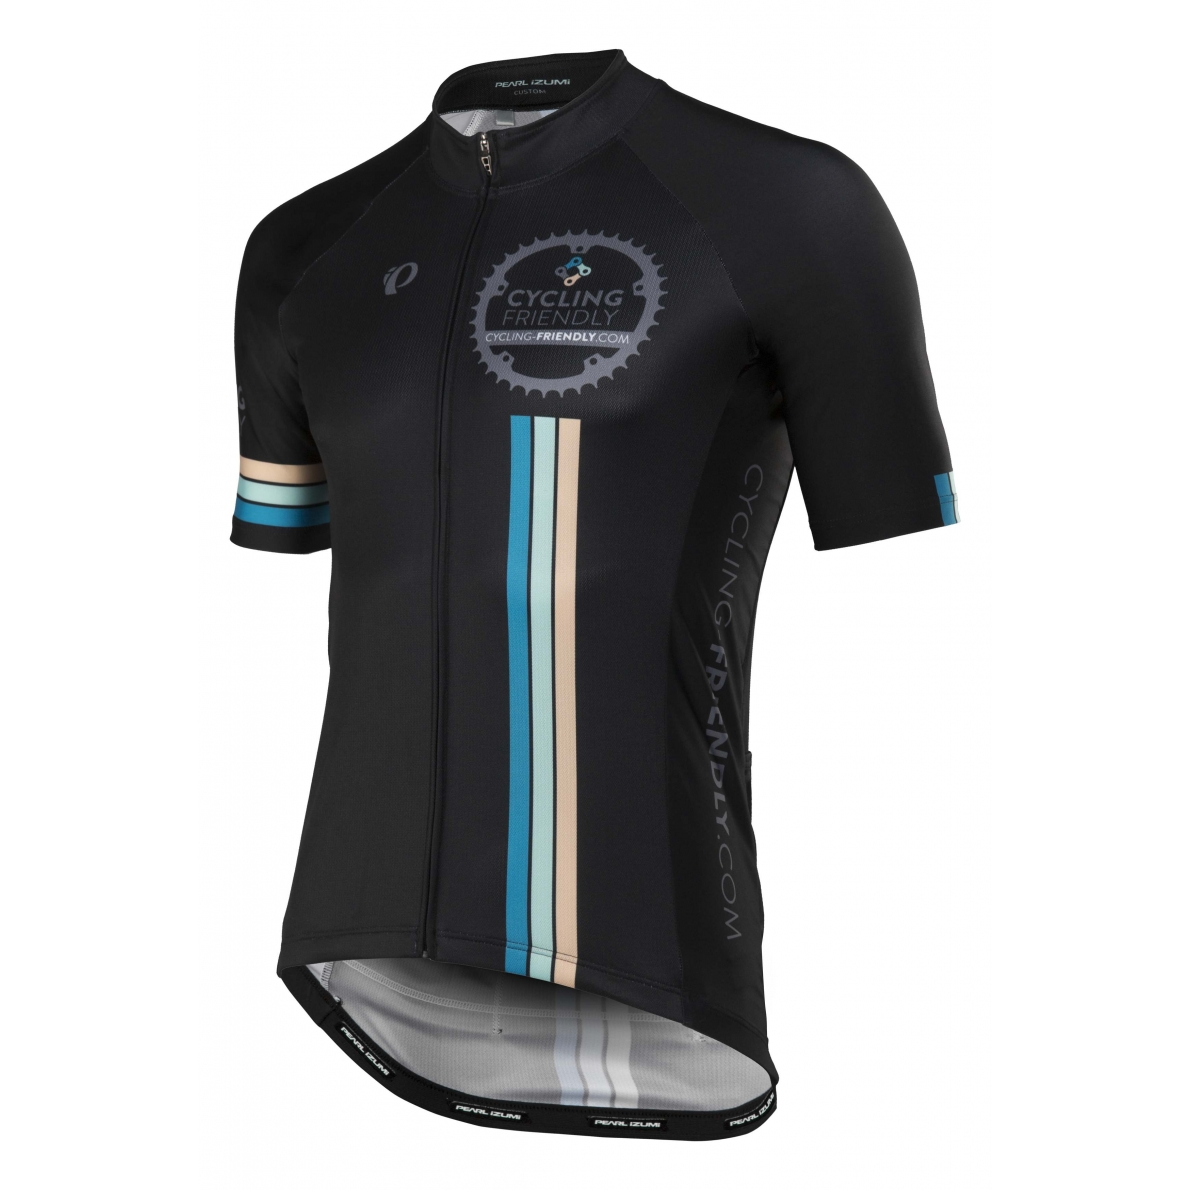 efe51461c Pearl Izumi Mens Cycling Friendly Elite Pursuit Jersey Black Blue L ...